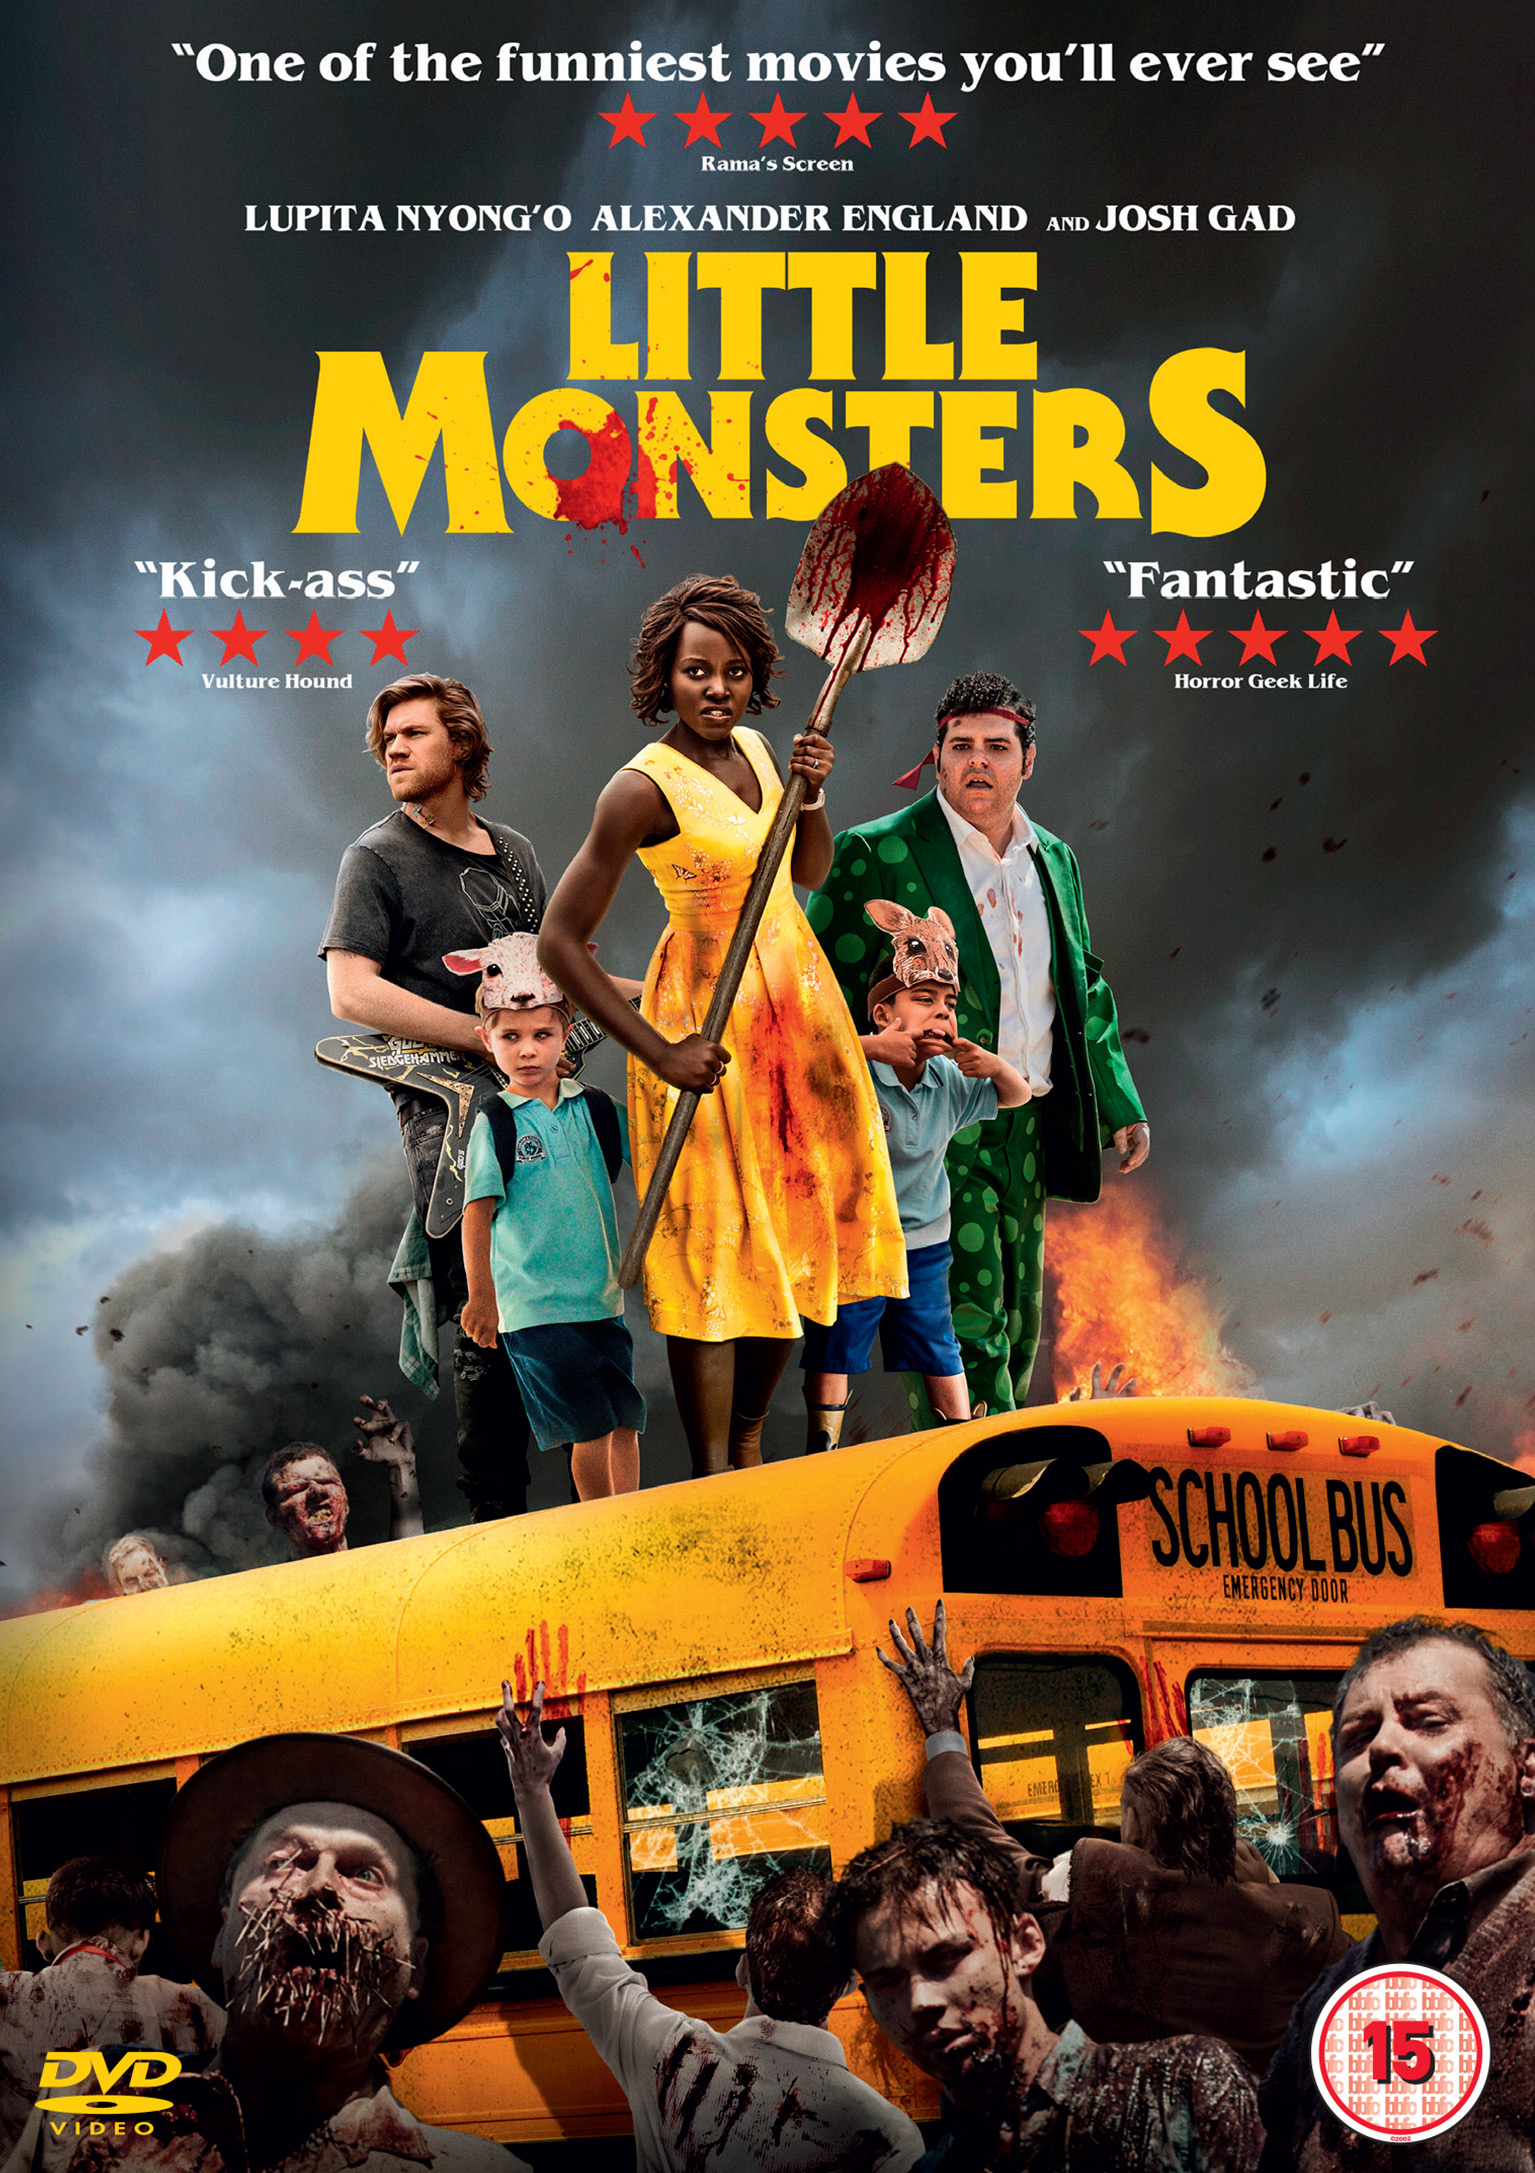 Film Review: LITTLE MONSTERS (2019)